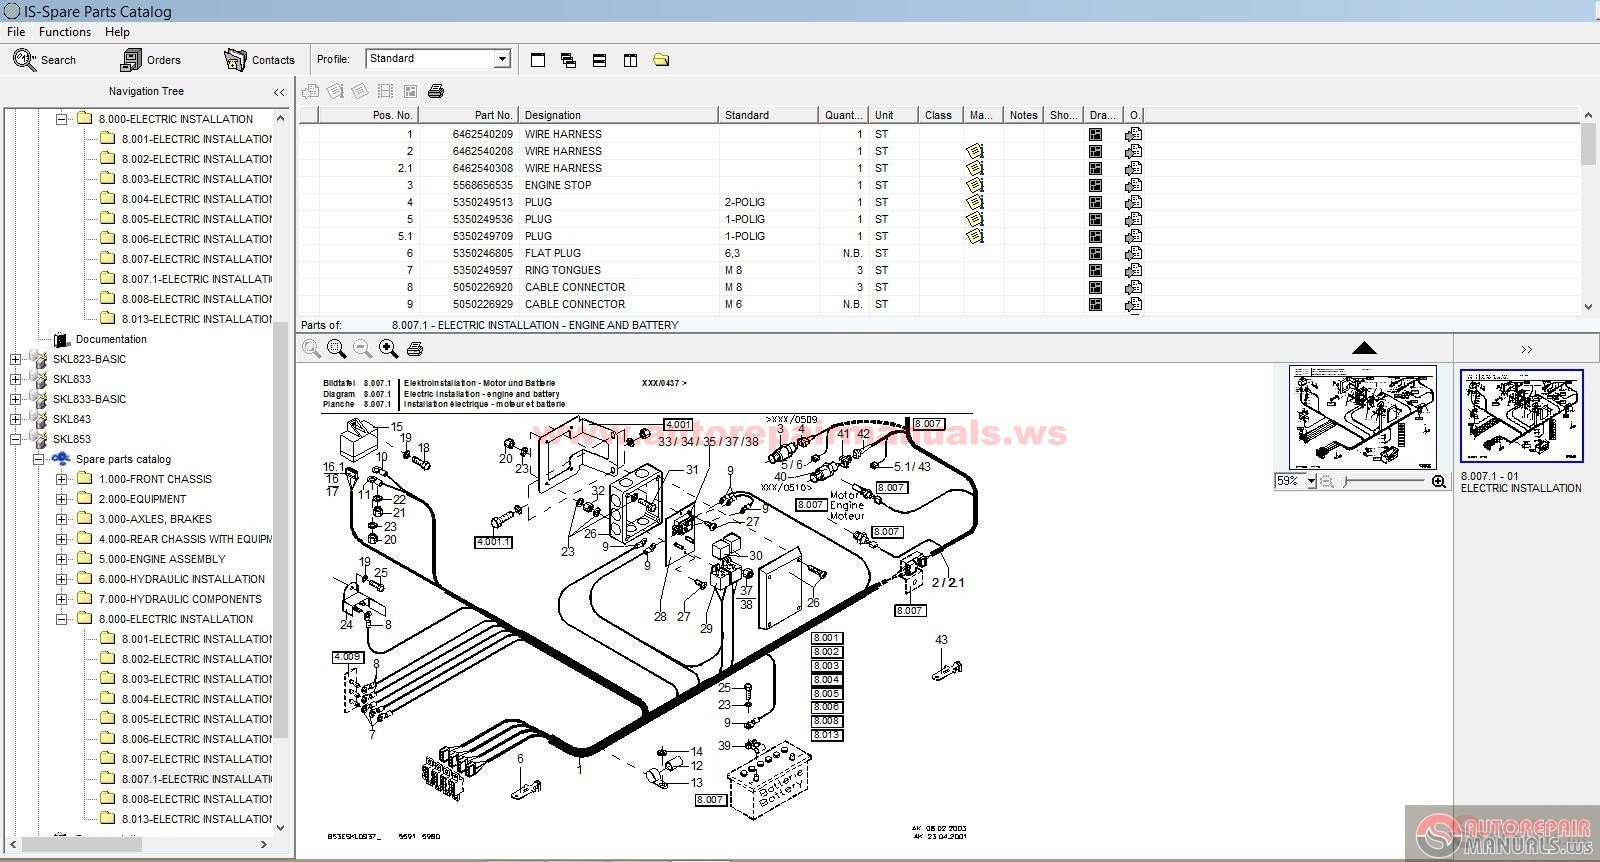 Terex_SKL_823833843853863873_Parts_Catalog5 demag wiring diagram ingersoll rand wiring diagram wiring diagram demag wiring diagram at webbmarketing.co